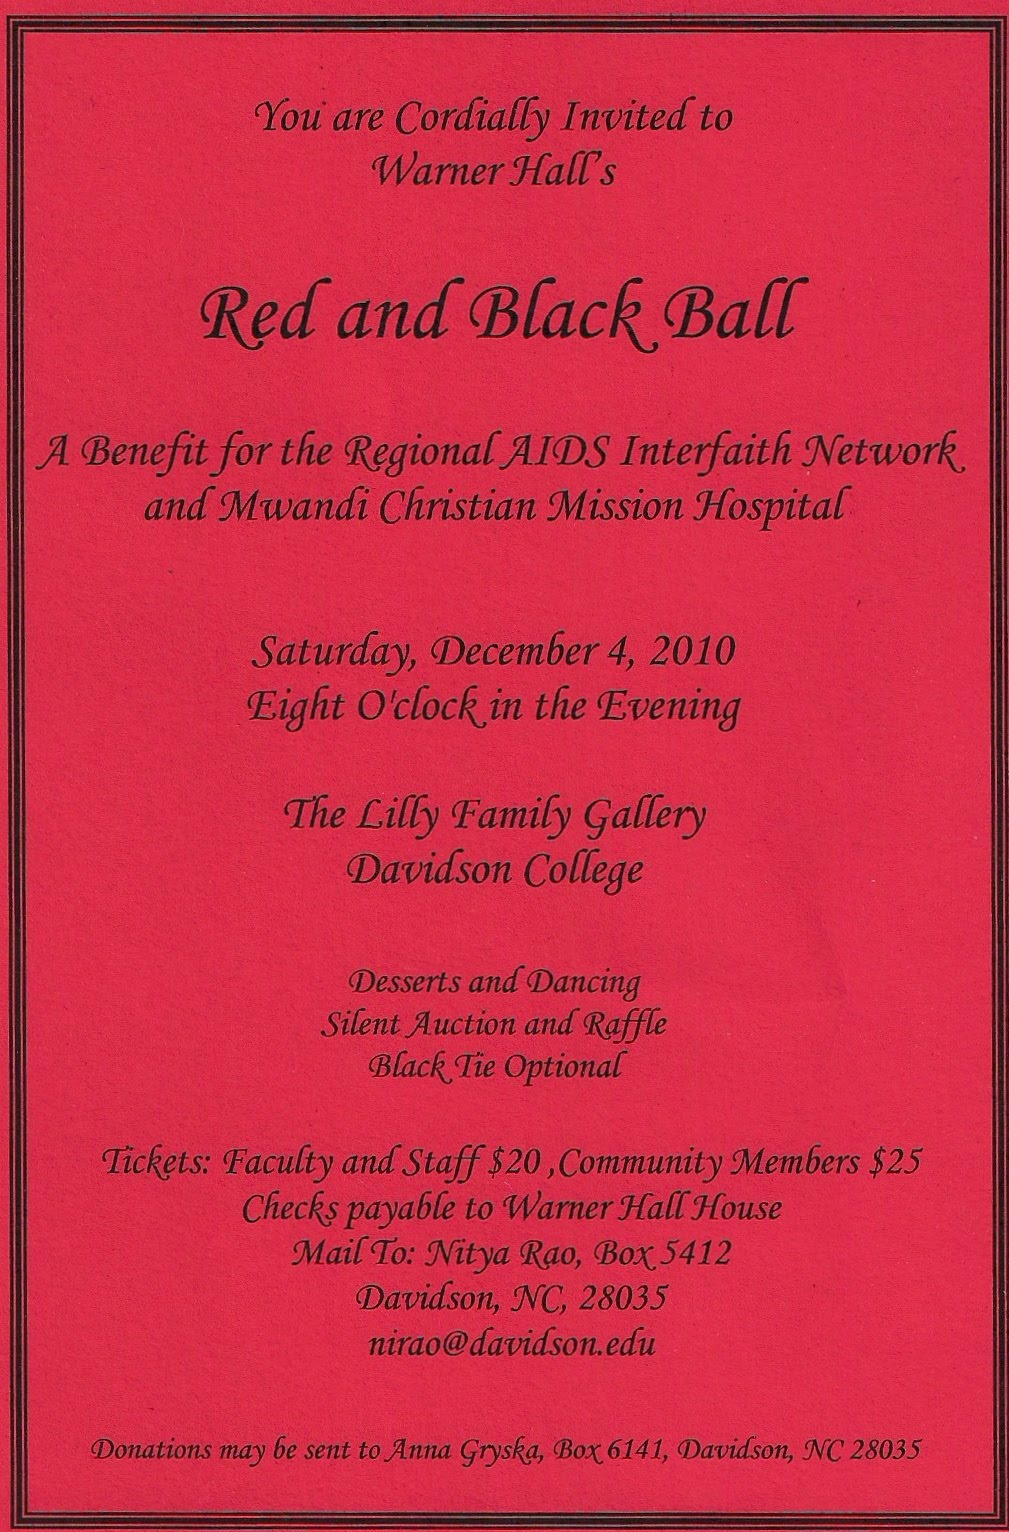 Davidson College's Annual Red and Black Ball